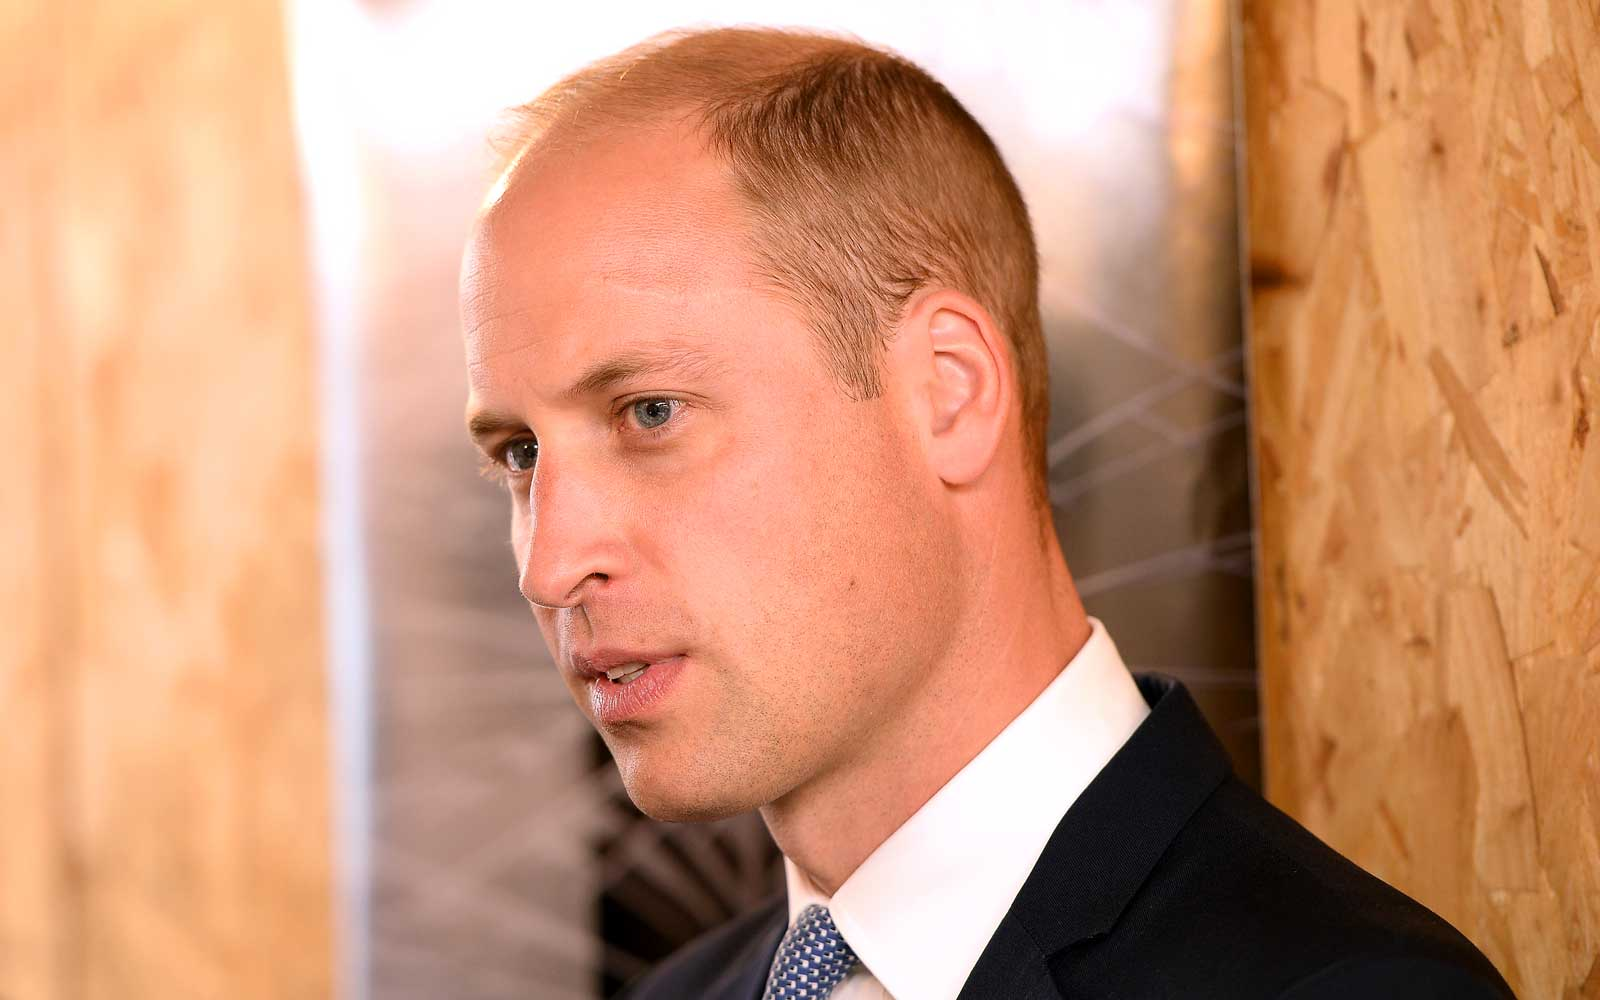 Prince William headed to Africa